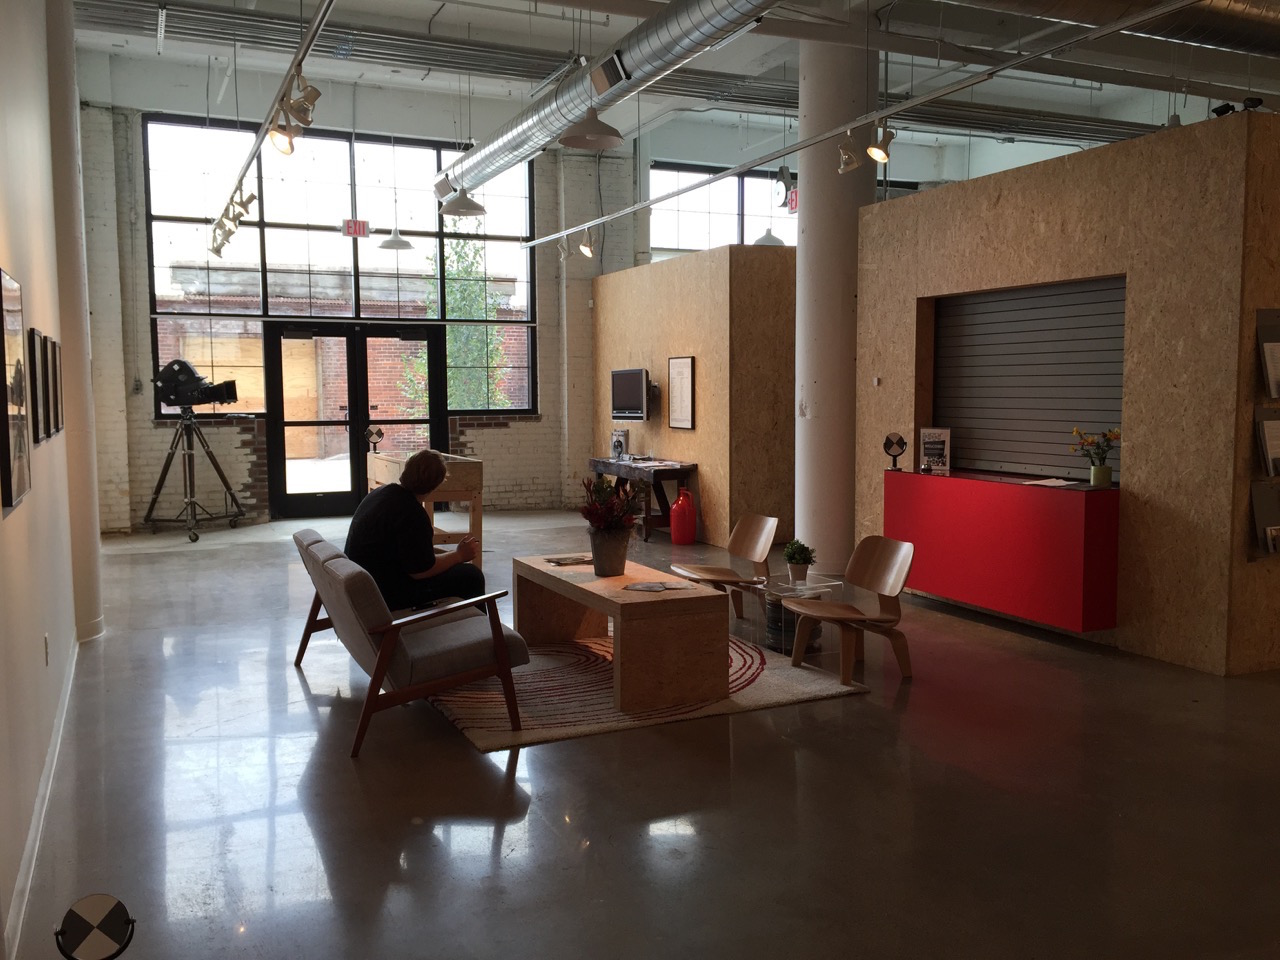 The entrance and lobby area of Independent Filmmaker Project Minnesota's new space (all photos by the author for Hyperallergic unless indicated otherwise)